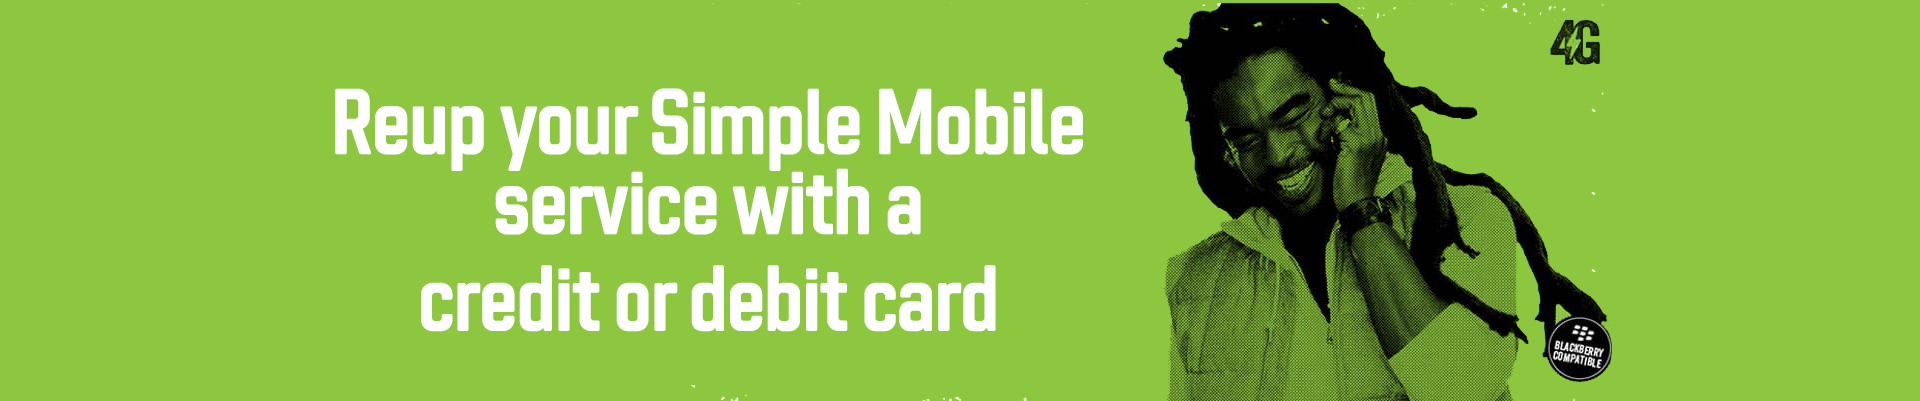 SIMple Mobile Payments - Pay Your Bill Now